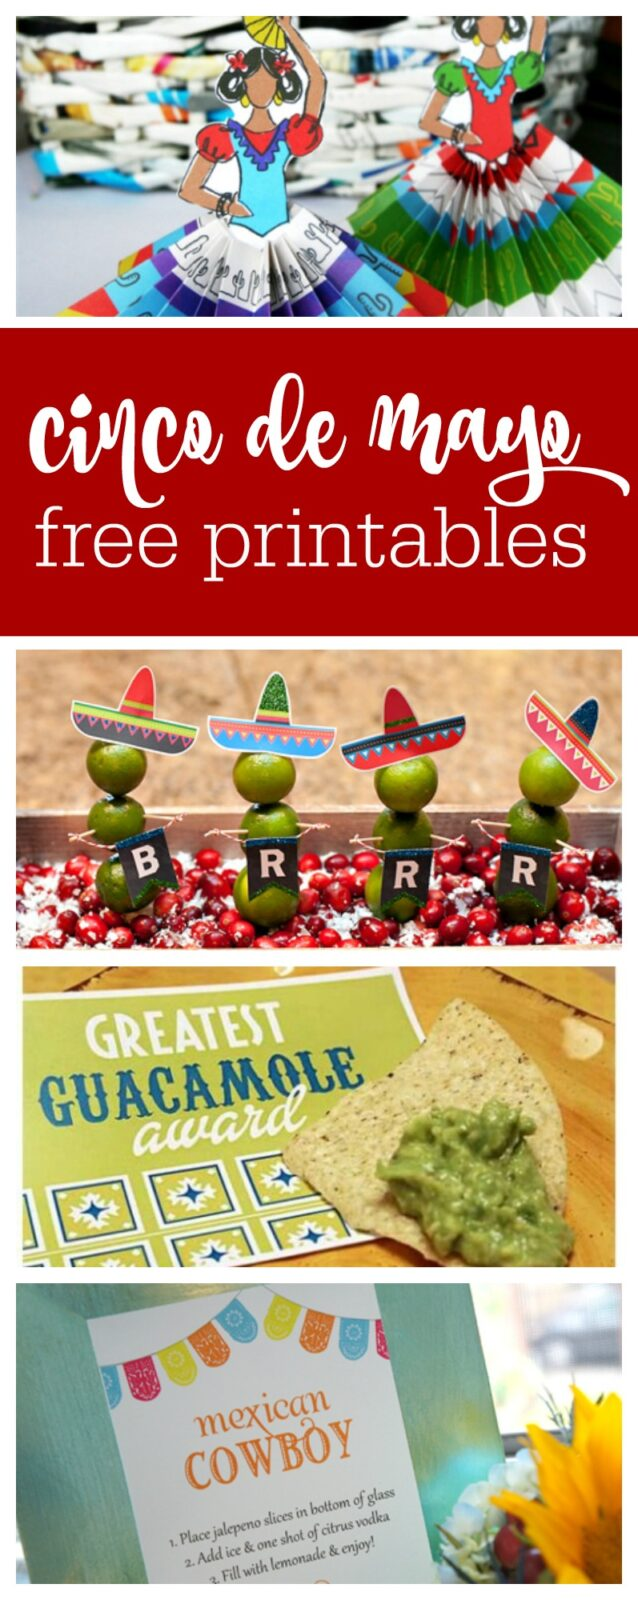 Cinco de Mayo free printables curated by The Party Teacher